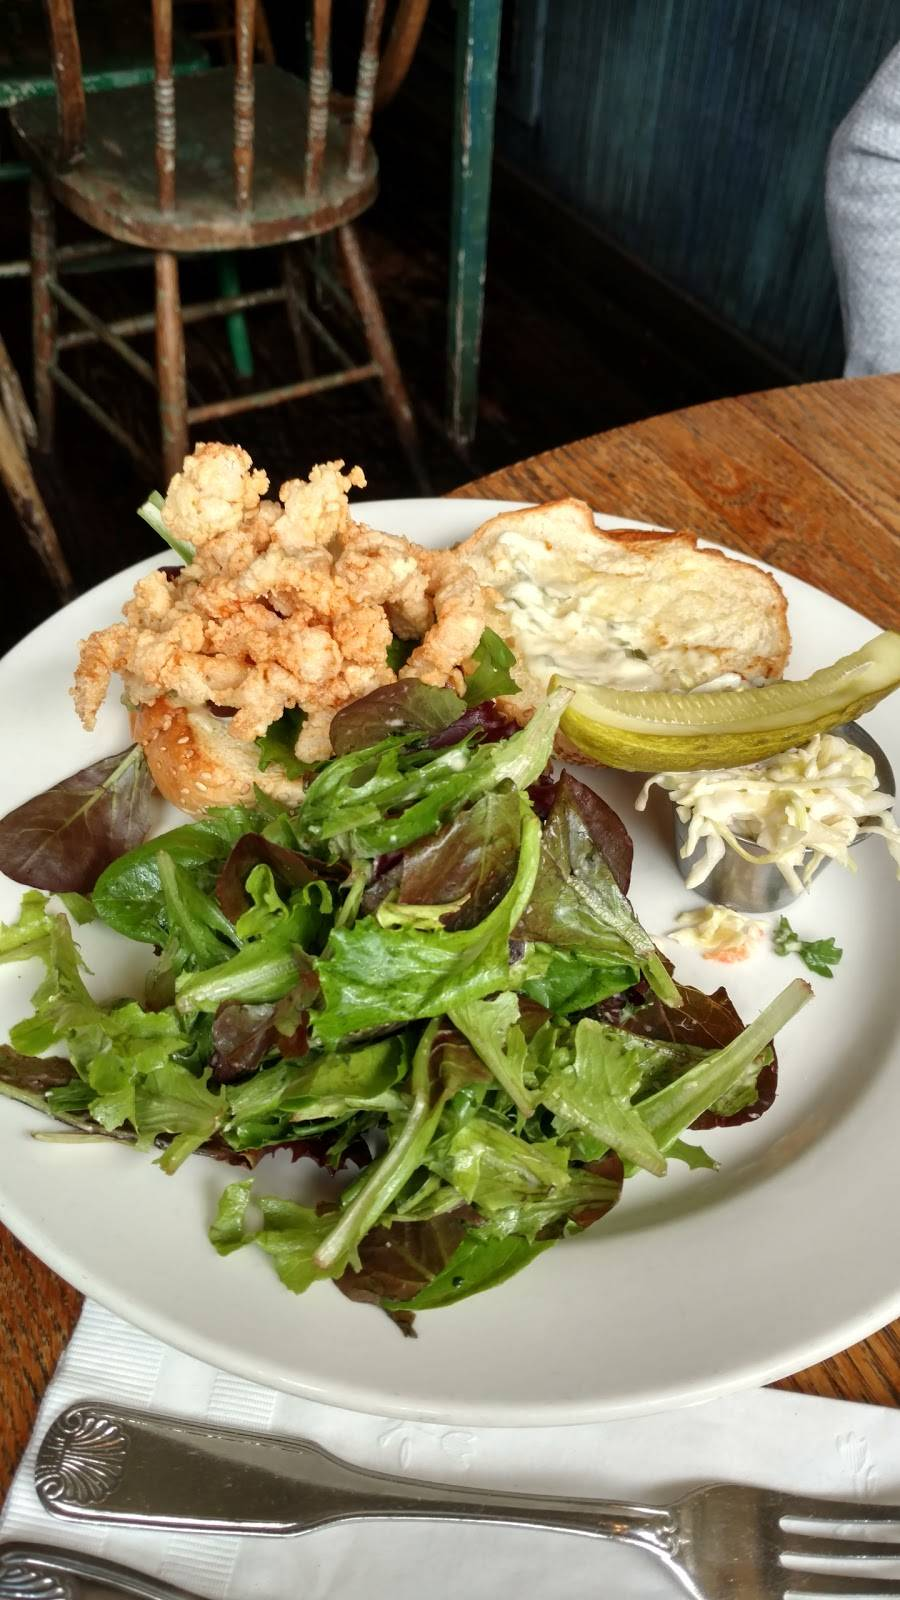 Miss Lucys Kitchen   restaurant   90 Partition St, Saugerties, NY 12477, USA   8452469240 OR +1 845-246-9240